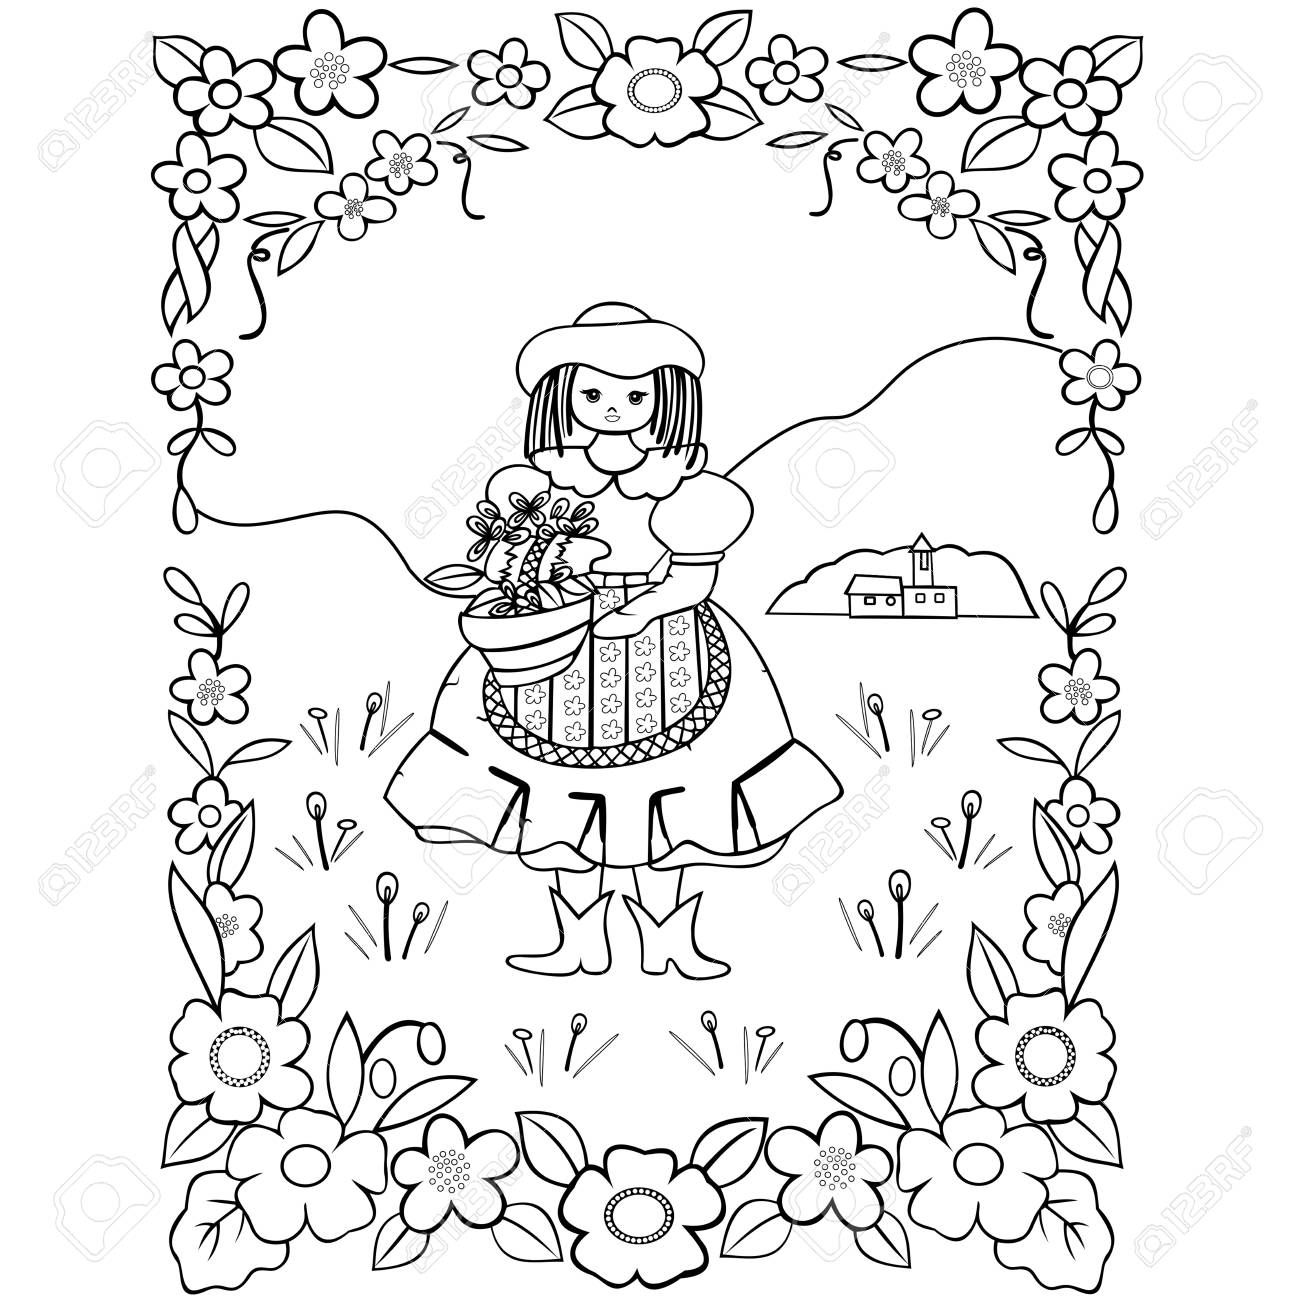 Painting For Children Cute Flower Girl Basket On A White Background